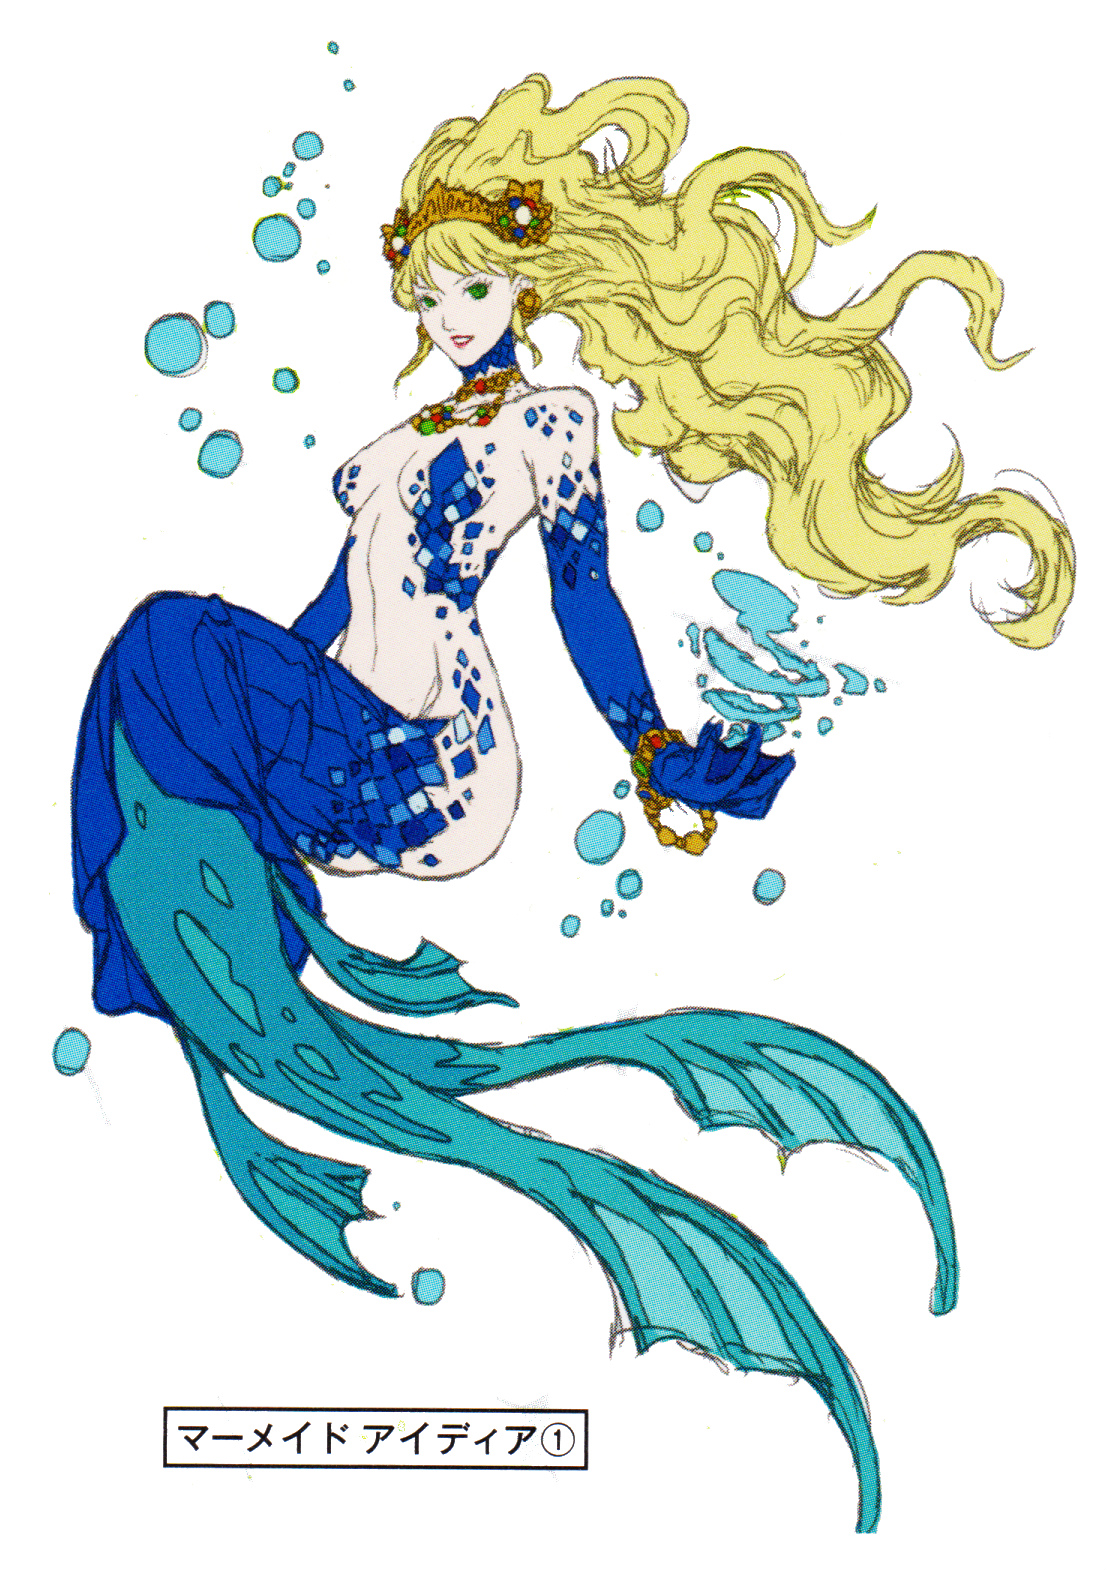 Mermaid Concept Art